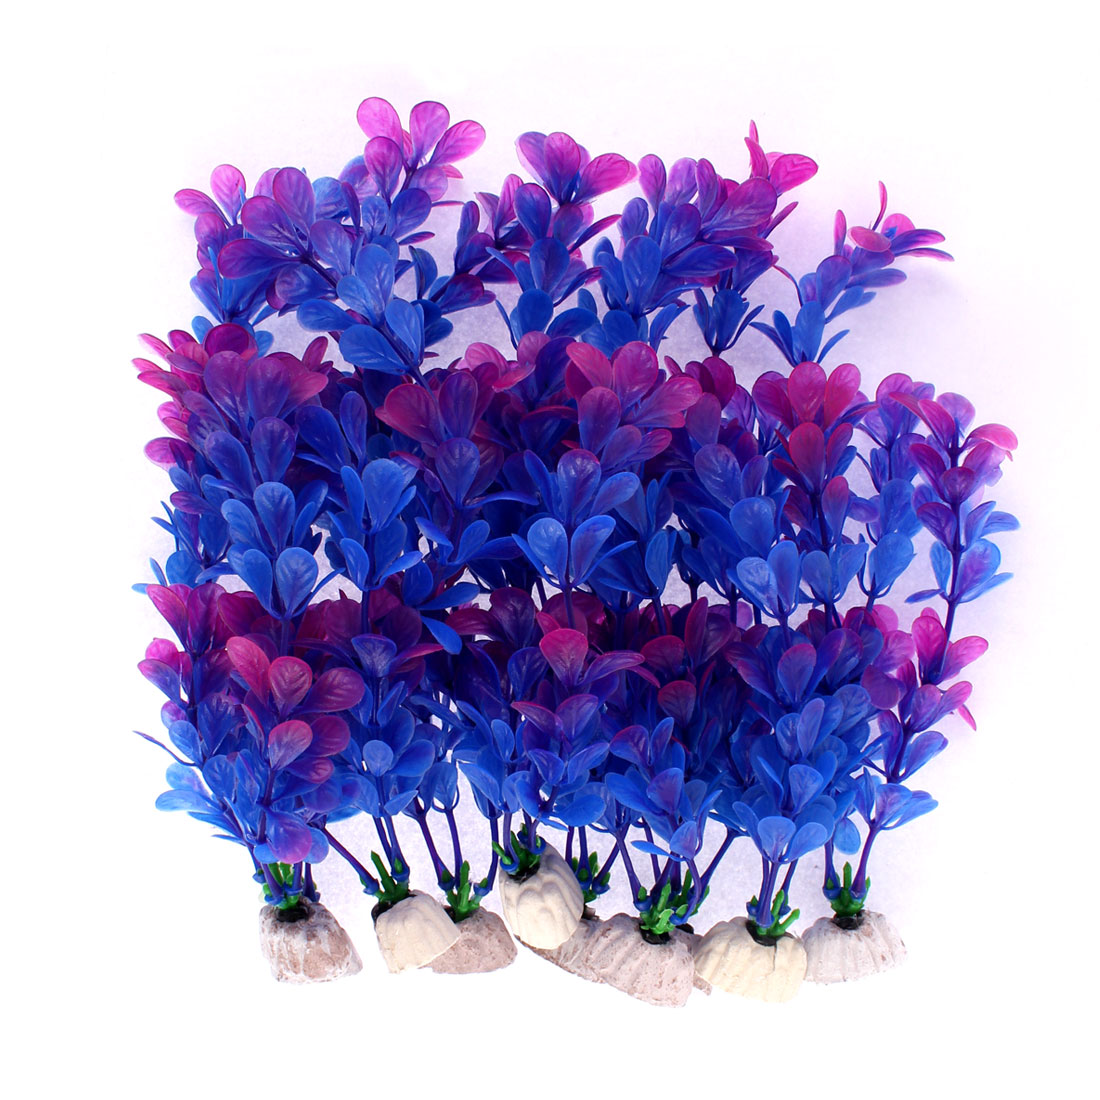 Aquarium Ceramic Base Plastic Plant Grass Ornament Purple Blue 10 Pcs